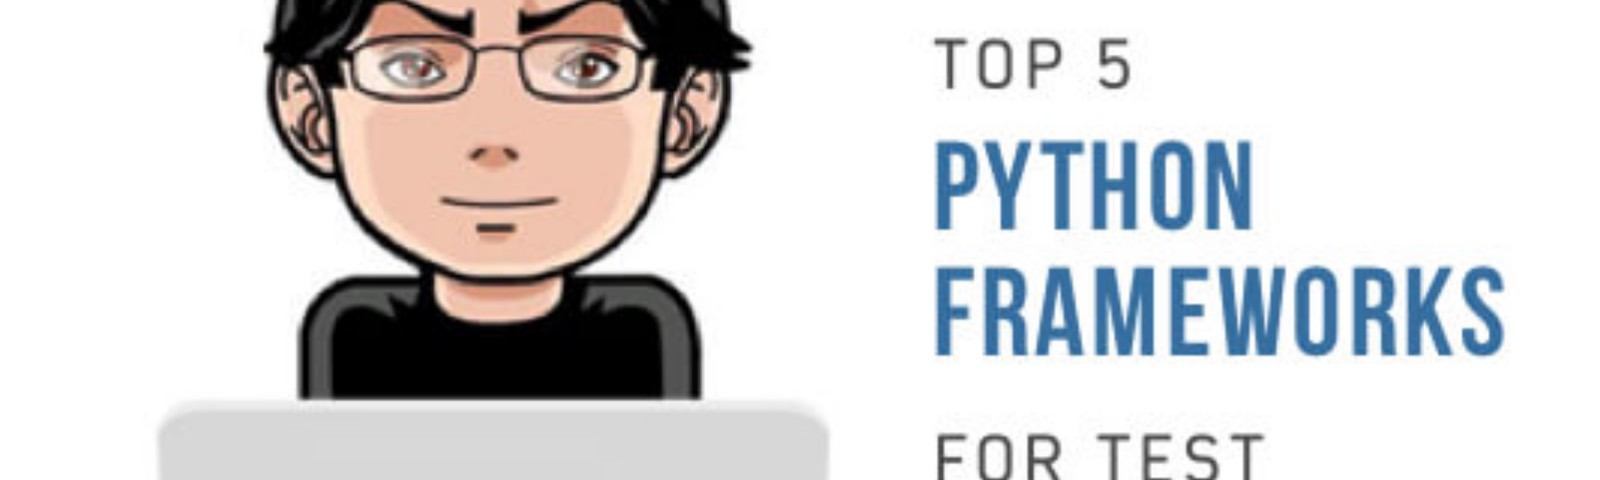 Top 5 Python Frameworks For Test Automation In 2019 | LambdaTest